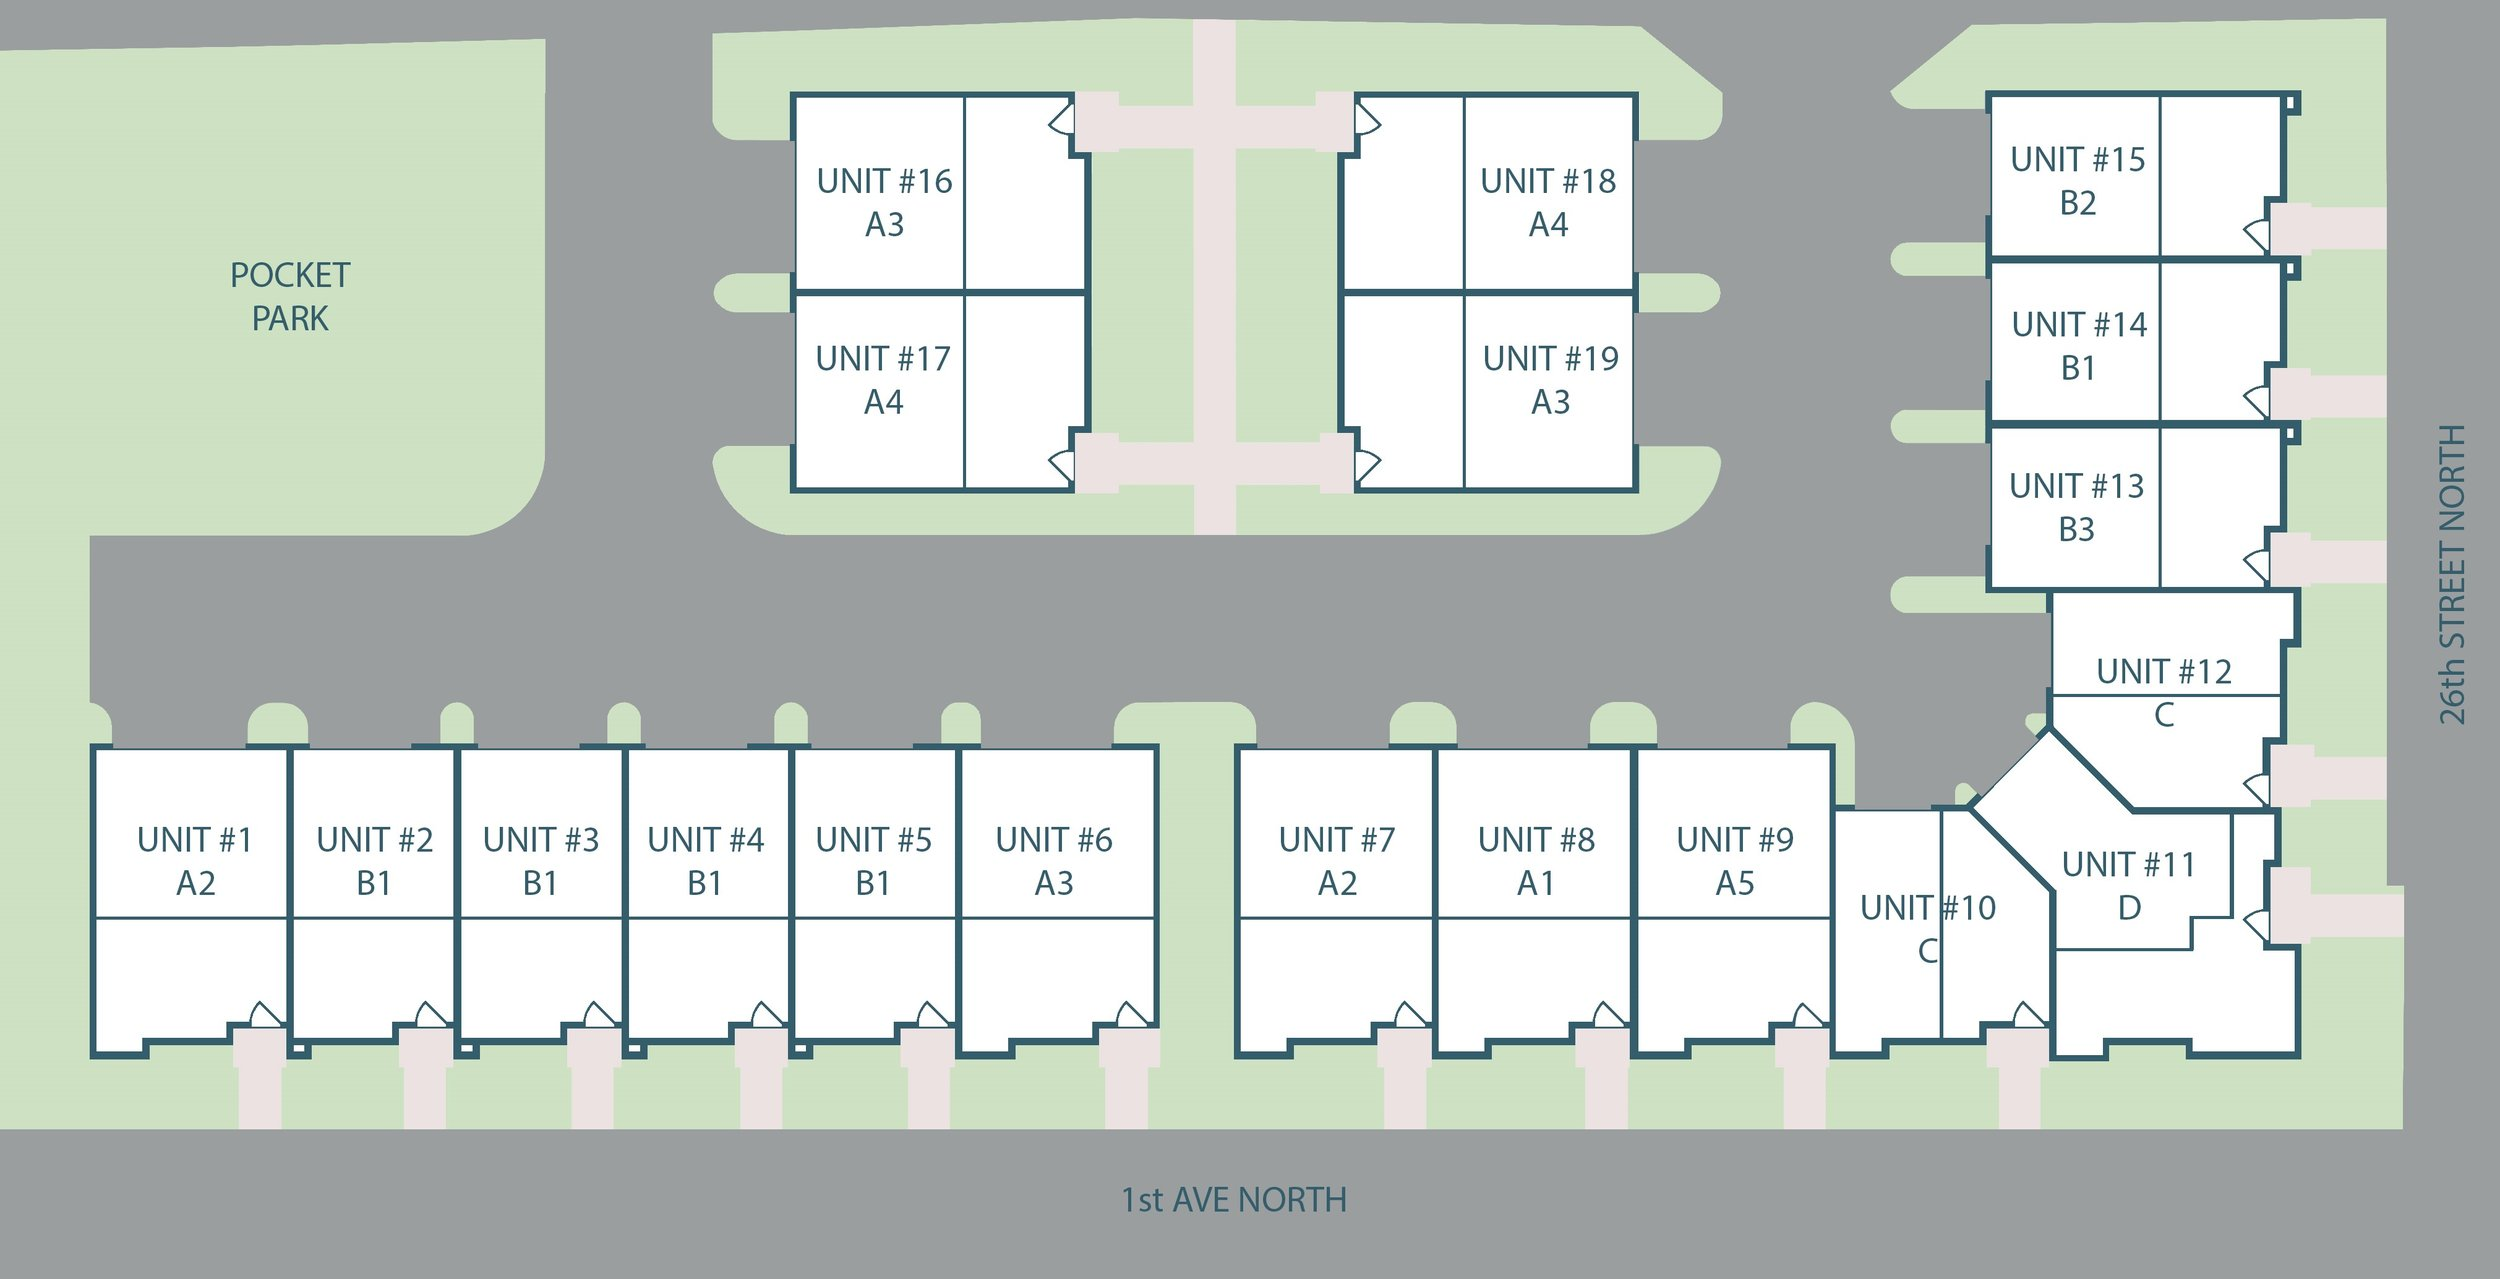 Most of the units will open up to 1st Avenue North or 26th Street, but four units will face an interior courtyard.